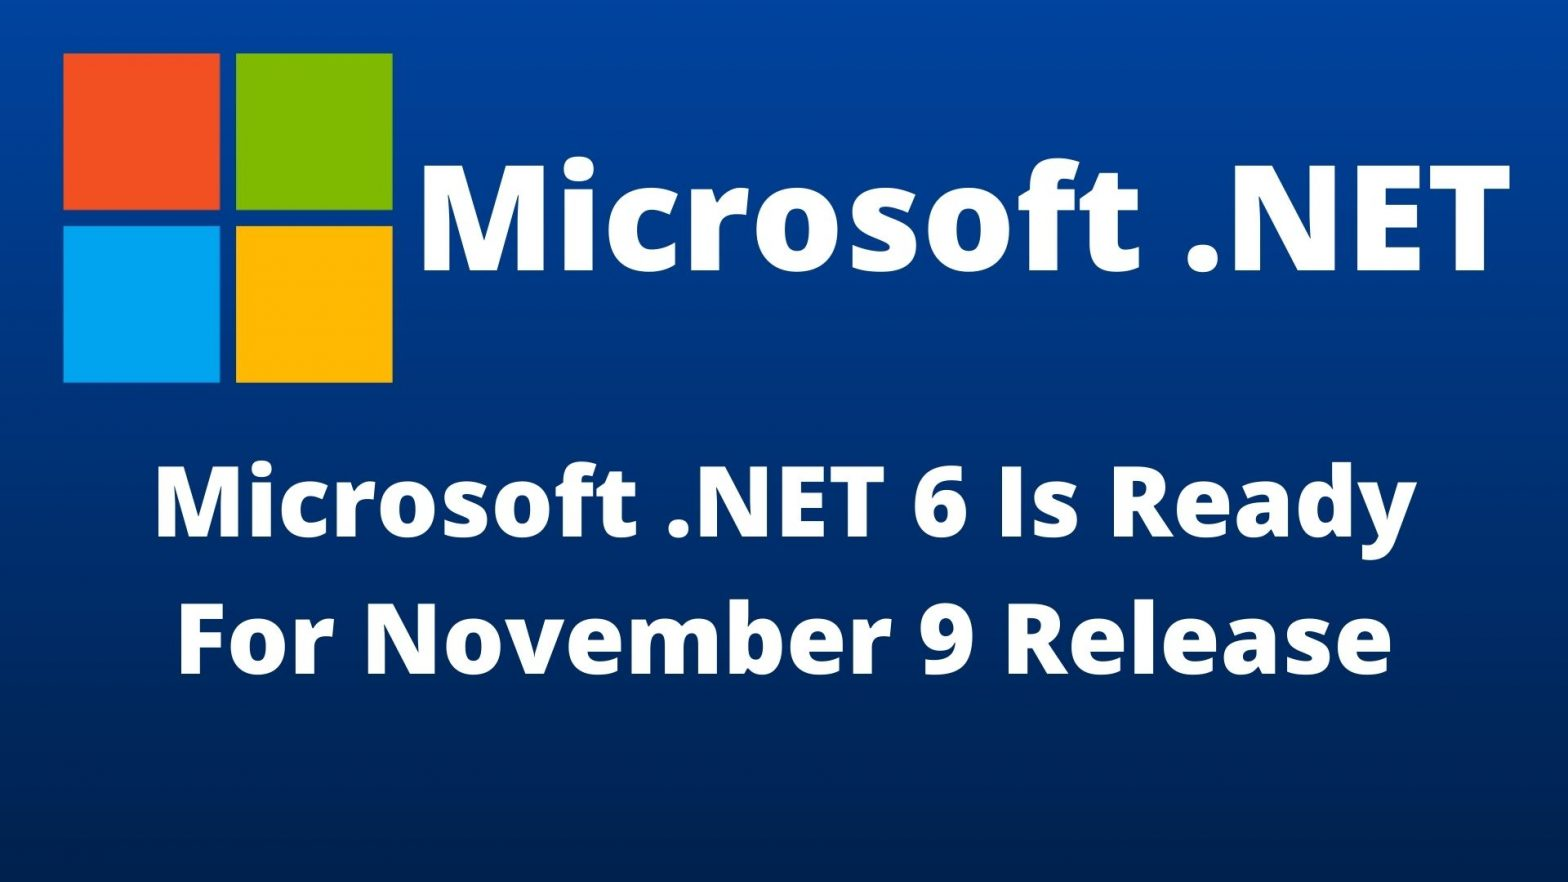 Microsoft .NET 6 Is Ready For November 9 Release